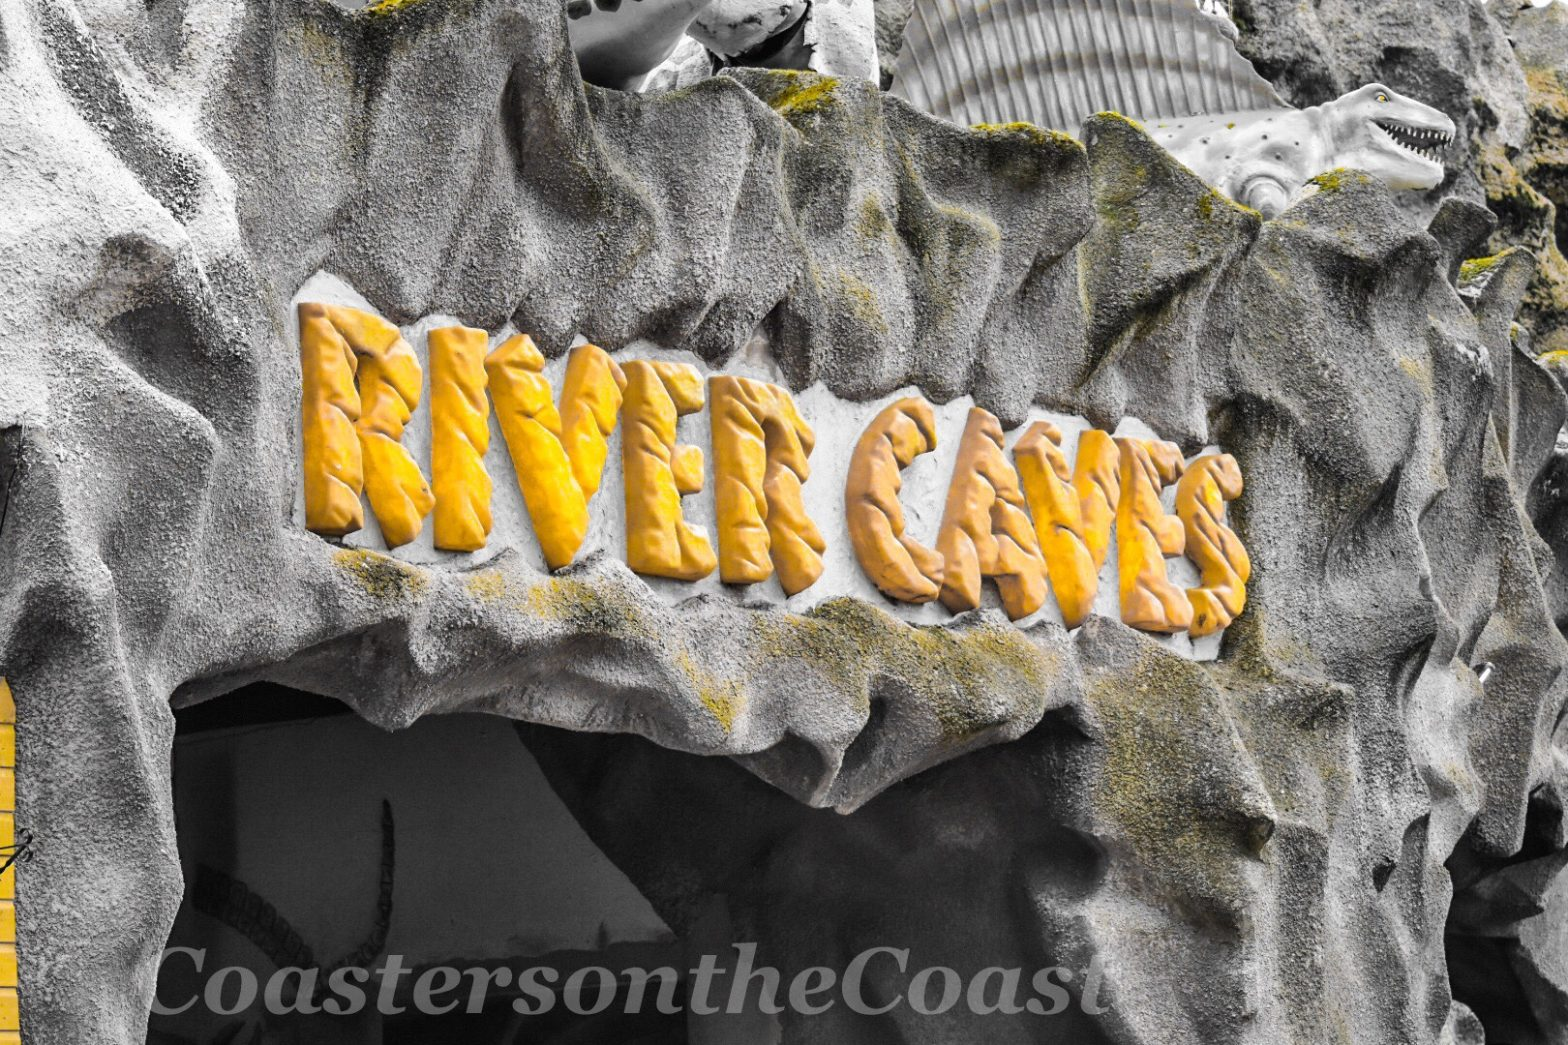 3 Ideas For The Future Of River Caves at Blackpool Pleasure Beach